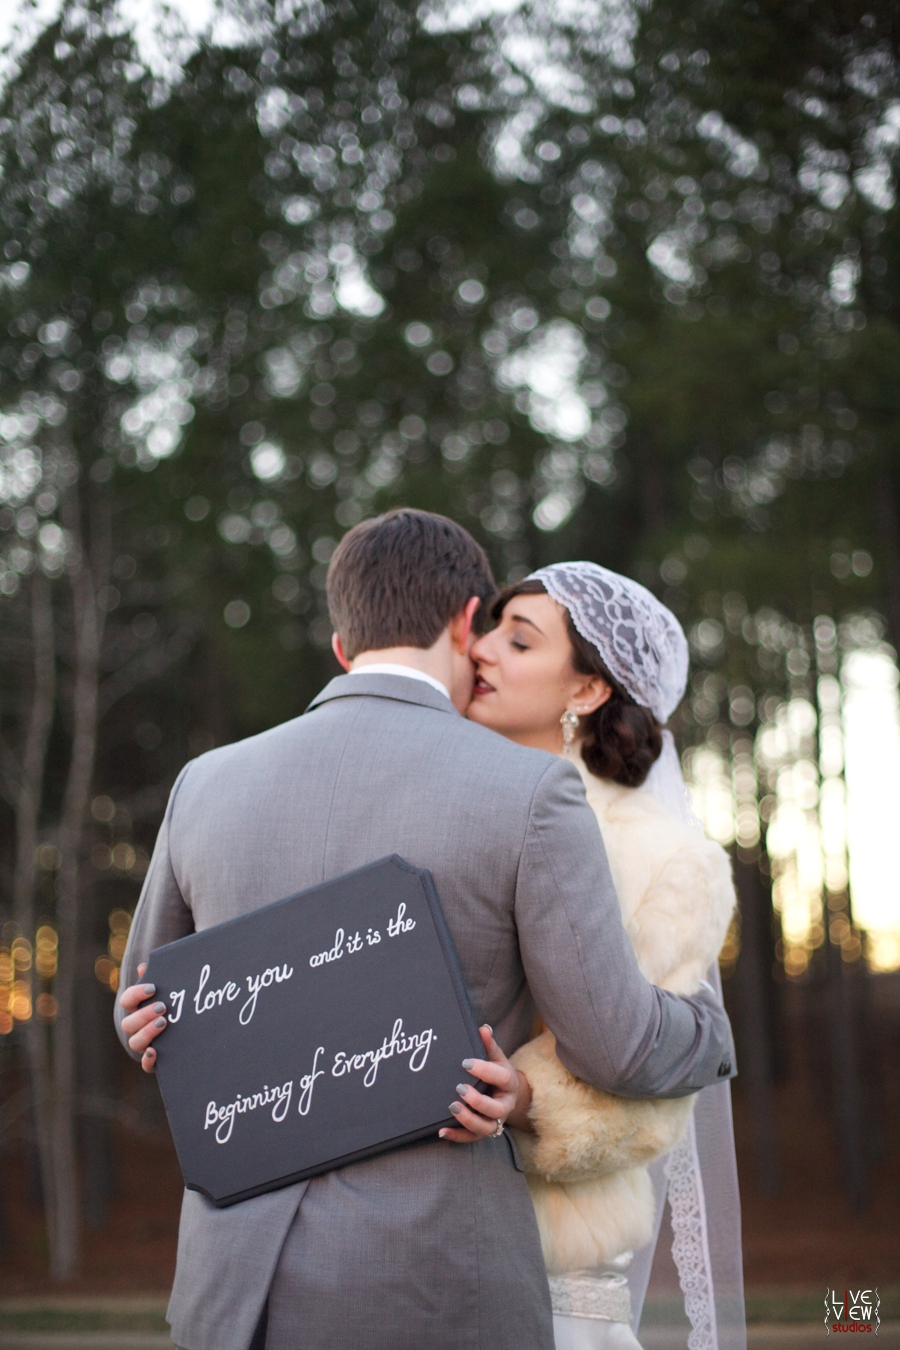 """""""I love you and it is the beginning of everything"""" sign from Raindrops on Roses Boutique, roaring twenties inspired wedding photography"""